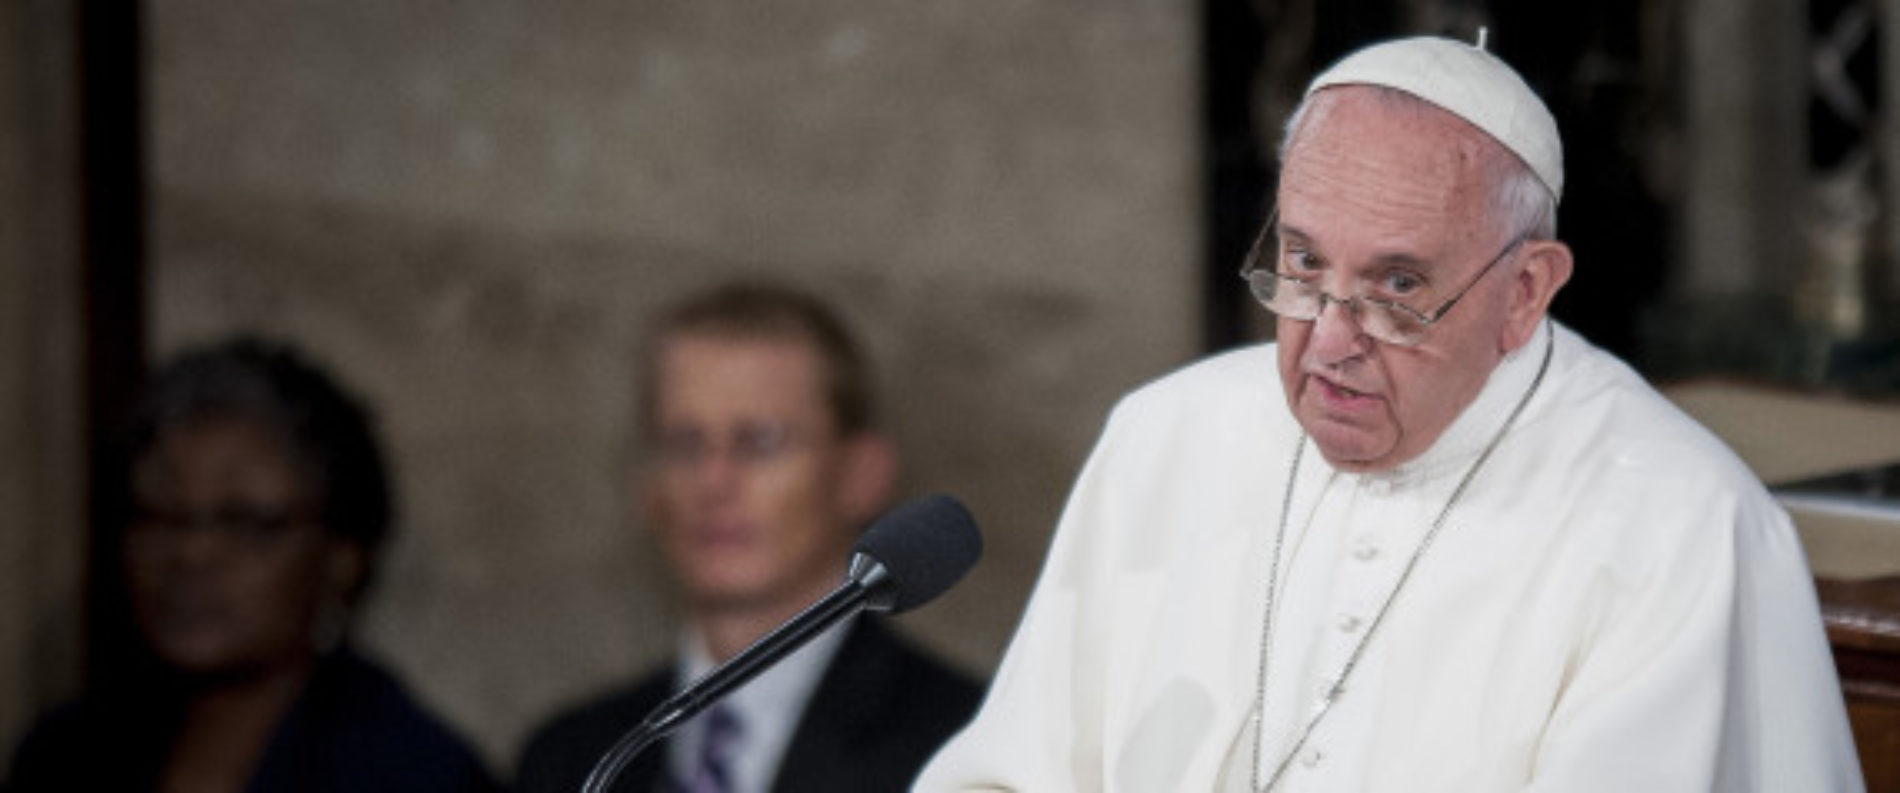 How Pope Francis Undermined the Goodwill of His Trip and Proved to Be a Coward